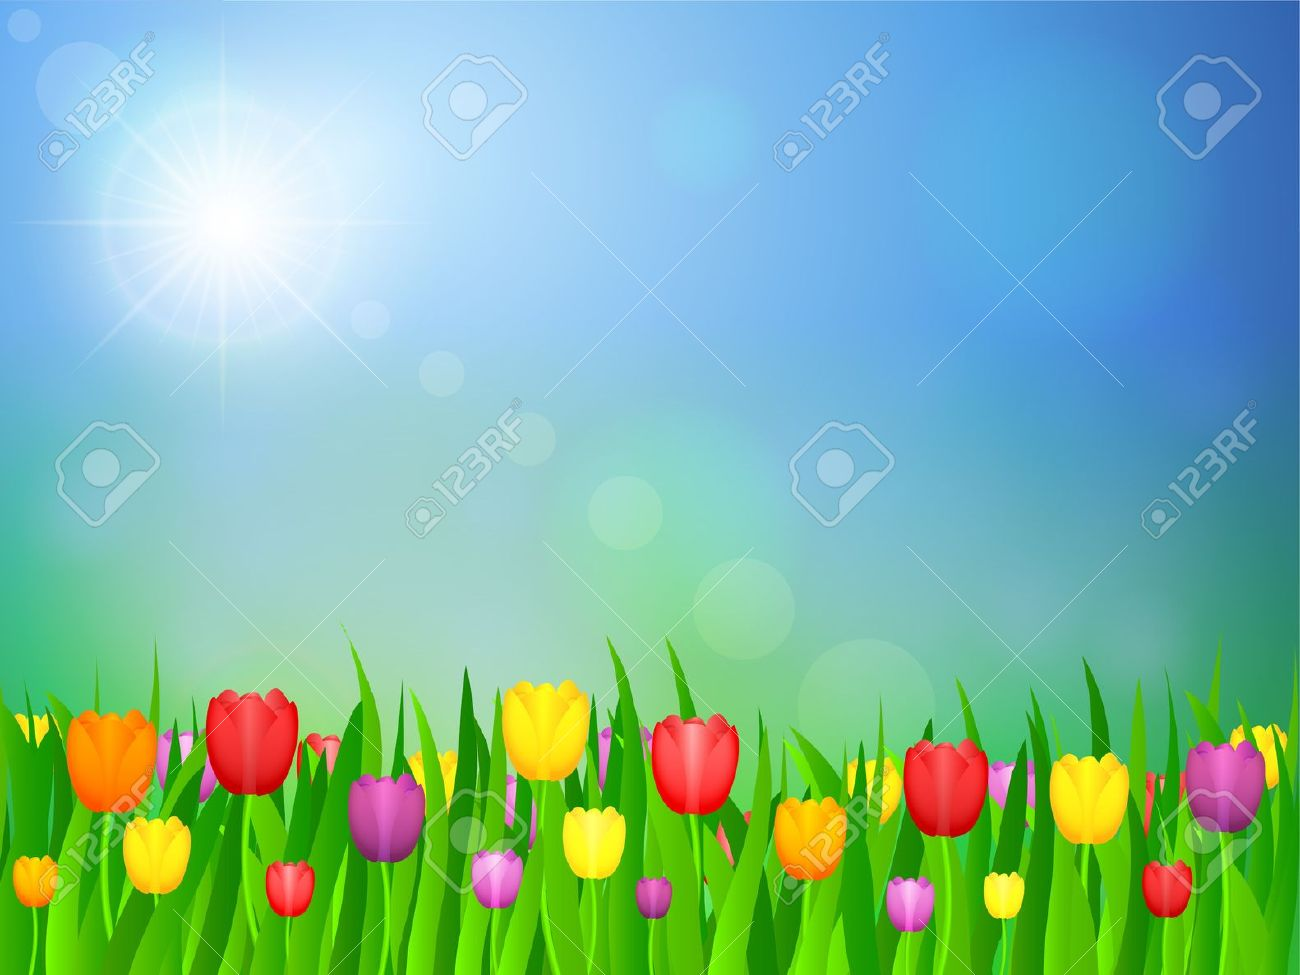 Tulip Flowers Field And Blue Sky. Vector Illustration. Royalty.